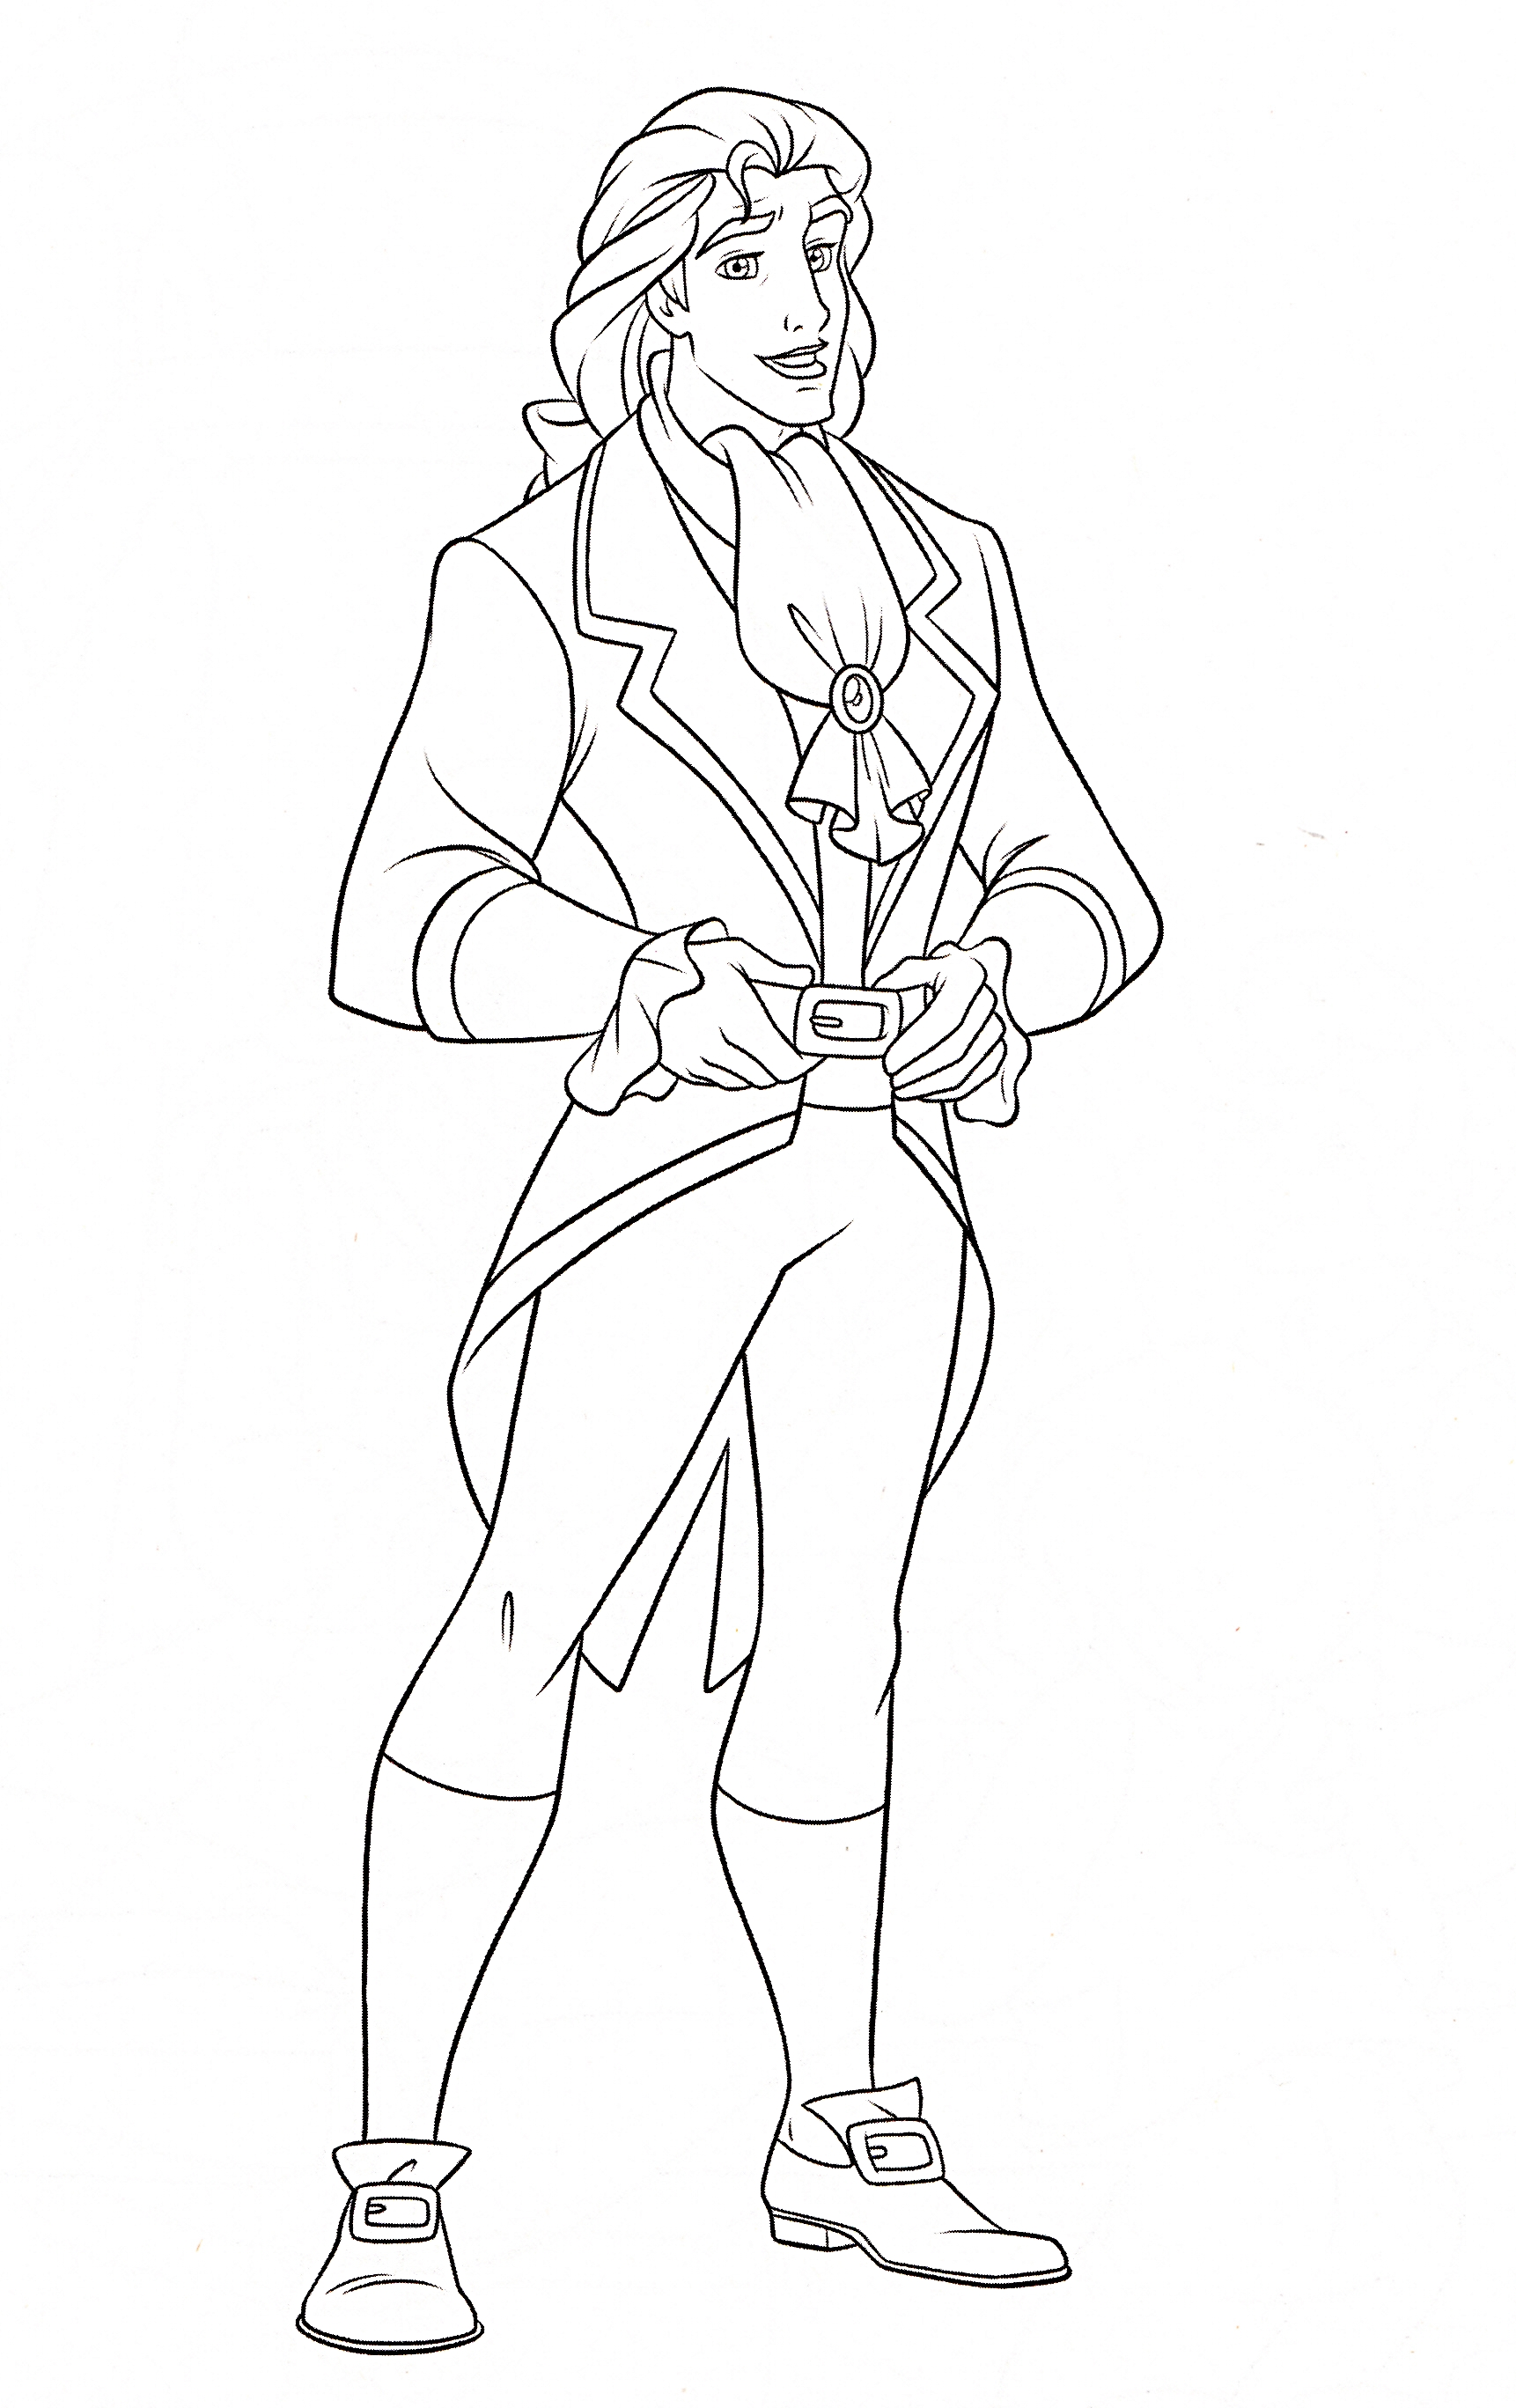 Prince Philip Coloring Pages Download And Print For Free